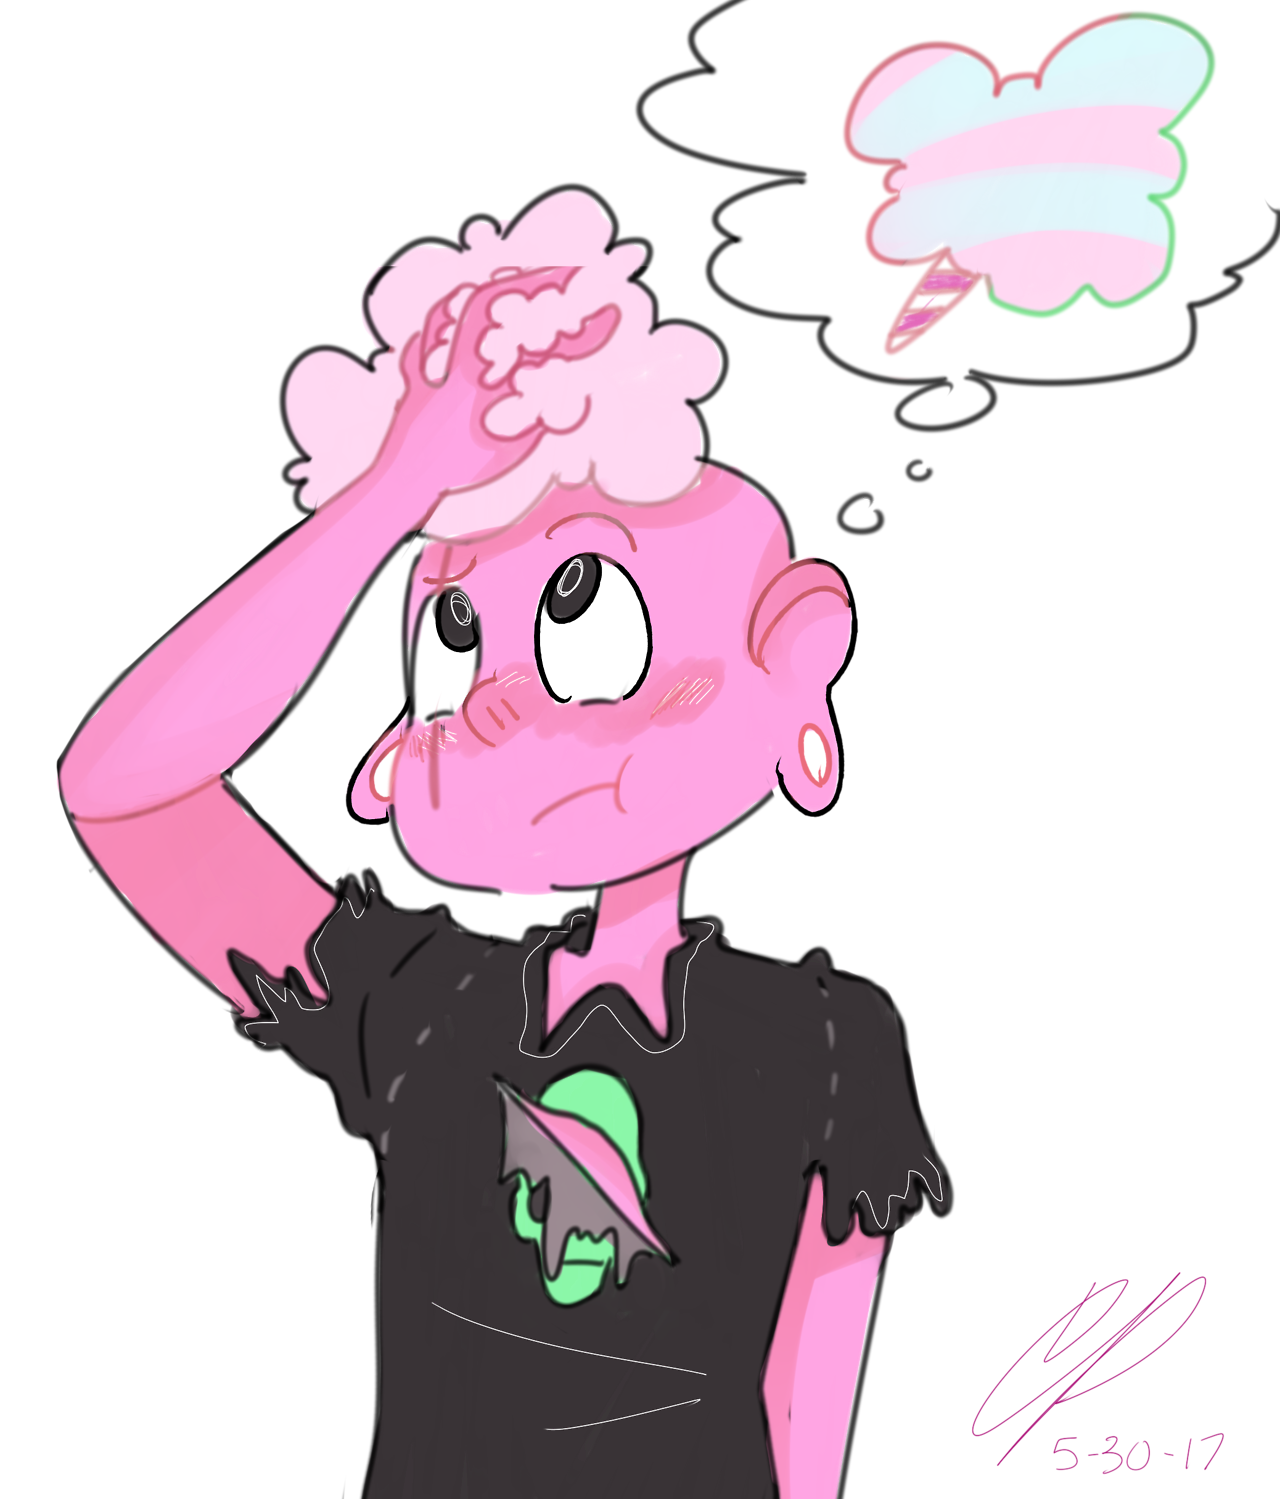 When I look at him I think about cotton candy?????? Just a quick little doodle to celebrate Steven Bomb 6